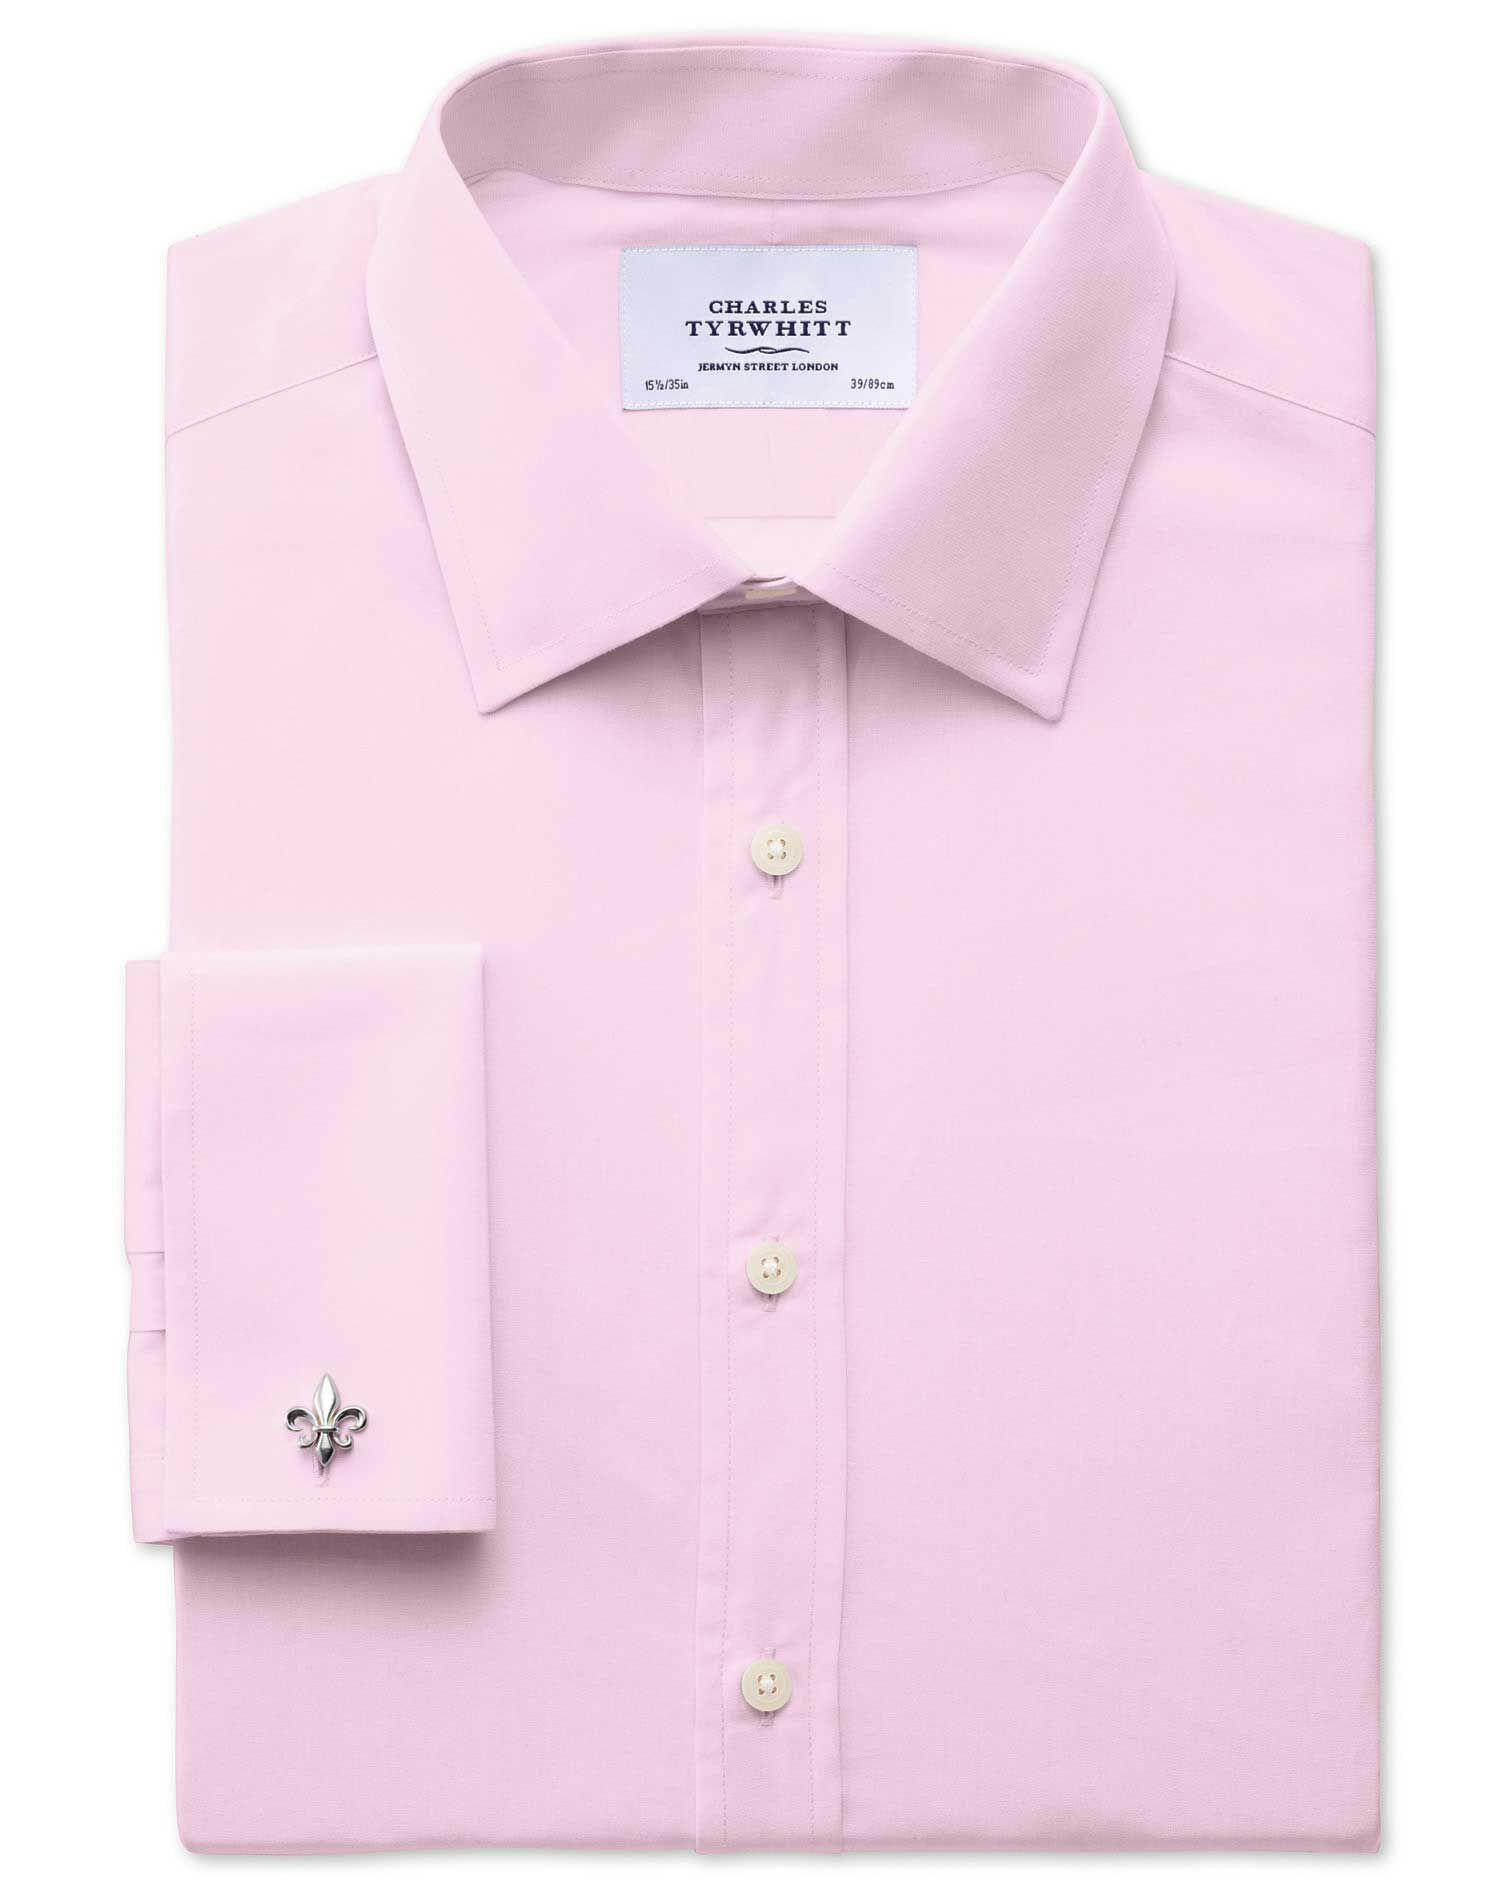 Extra Slim Fit End-On-End Pink Cotton Formal Shirt Double Cuff Size 17.5/35 by Charles Tyrwhitt